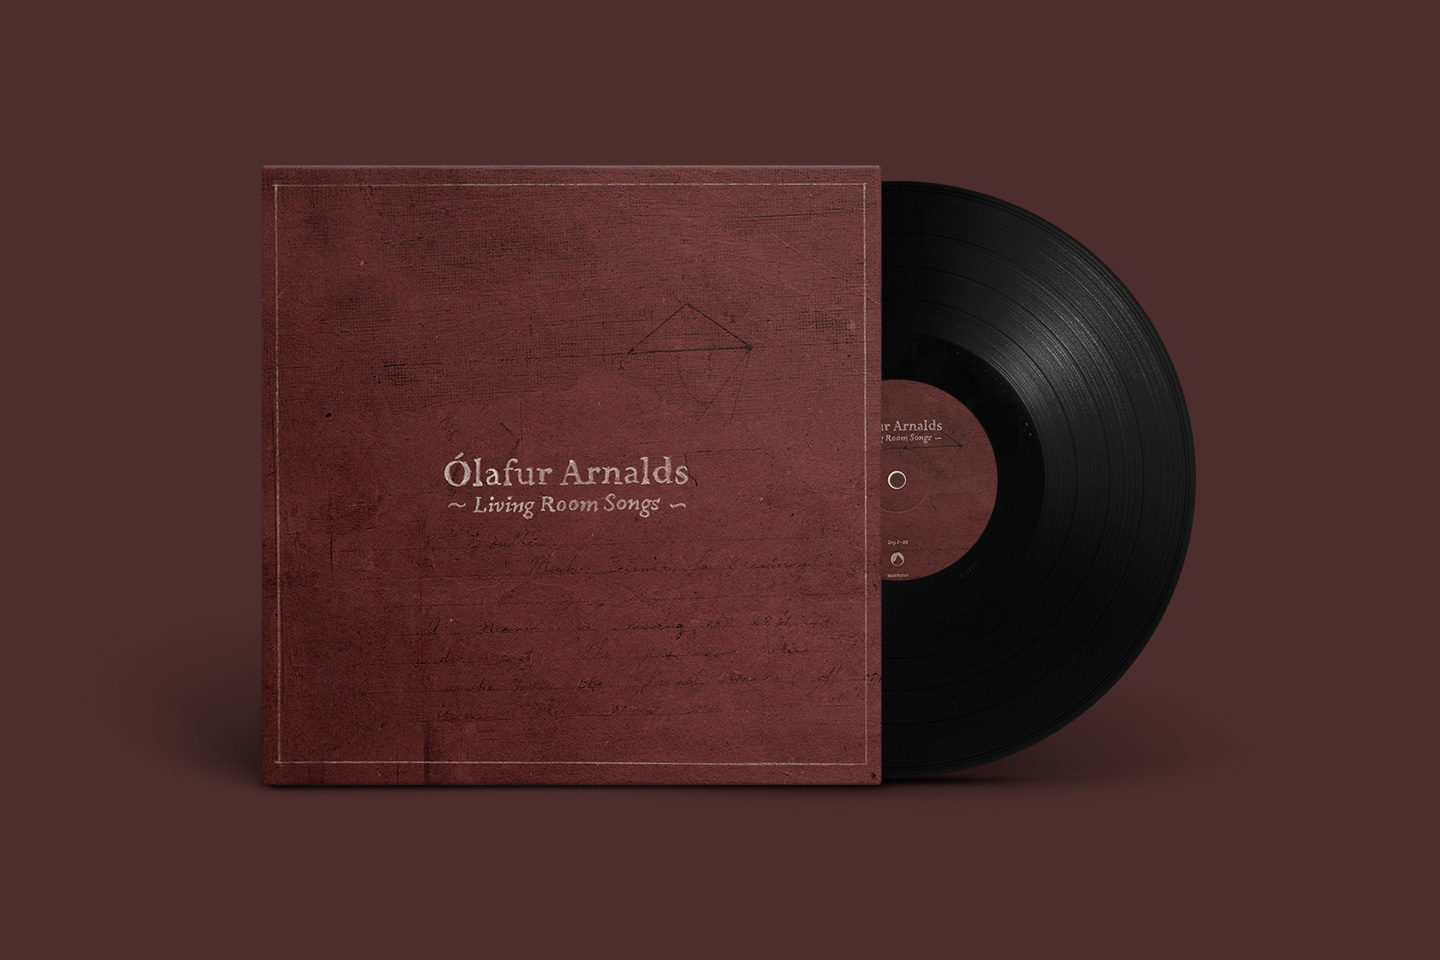 Fancy Living Room Songsólafur Arnalds - Releases - Erased Tapes intended for Living Room Song